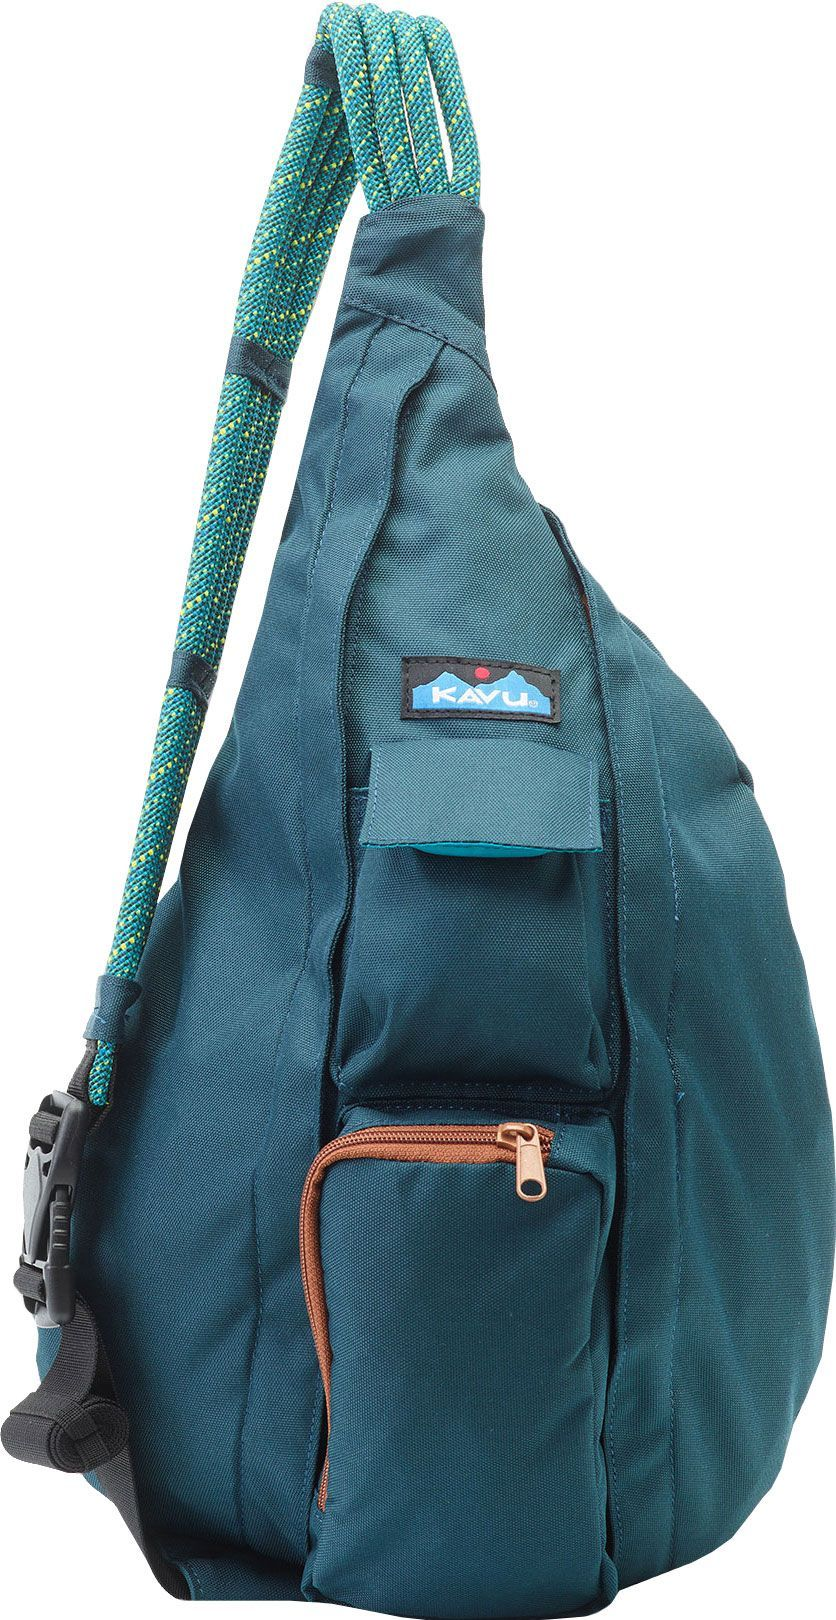 249c7f881 Kavu Rope Sling Bag, Black in 2019 | Products | Cloth bags, Bags ...